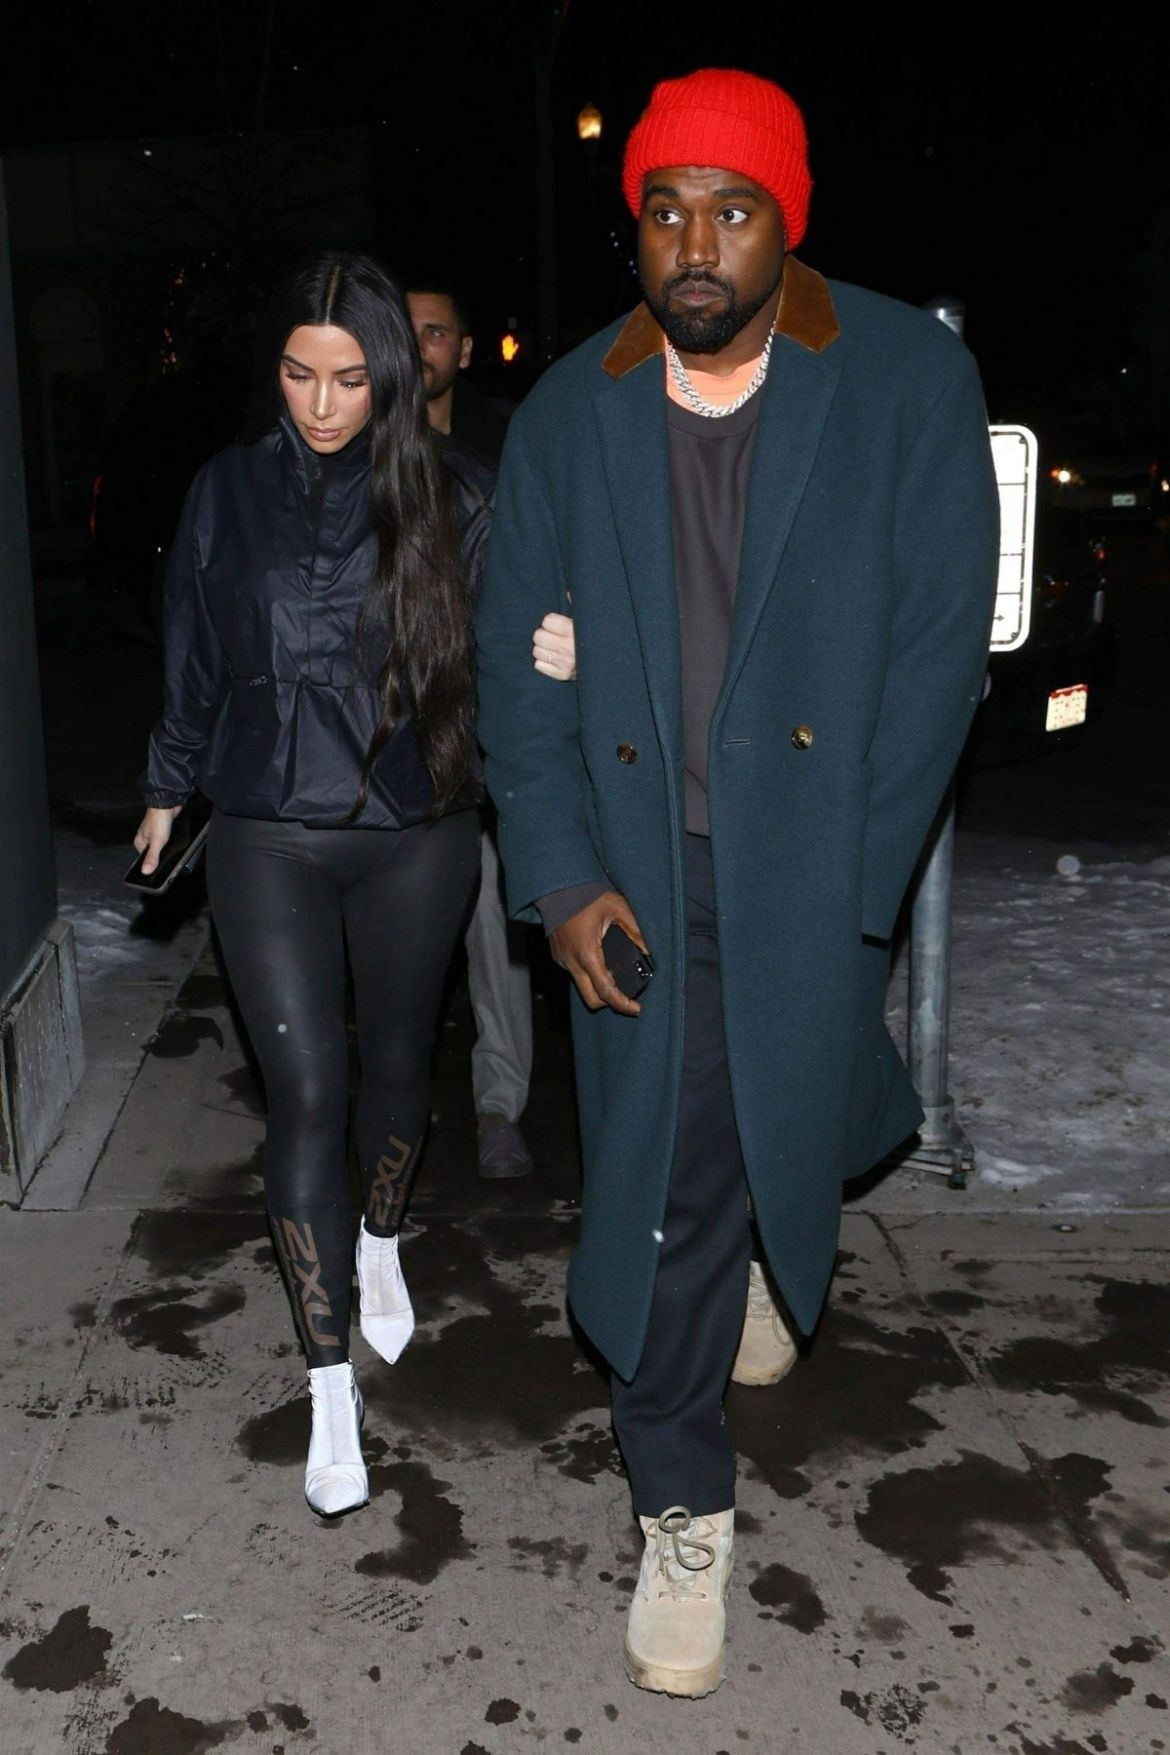 Kim, Kourtney Kardashian and Sofia Richie At matsuhisa restaurant in Aspen